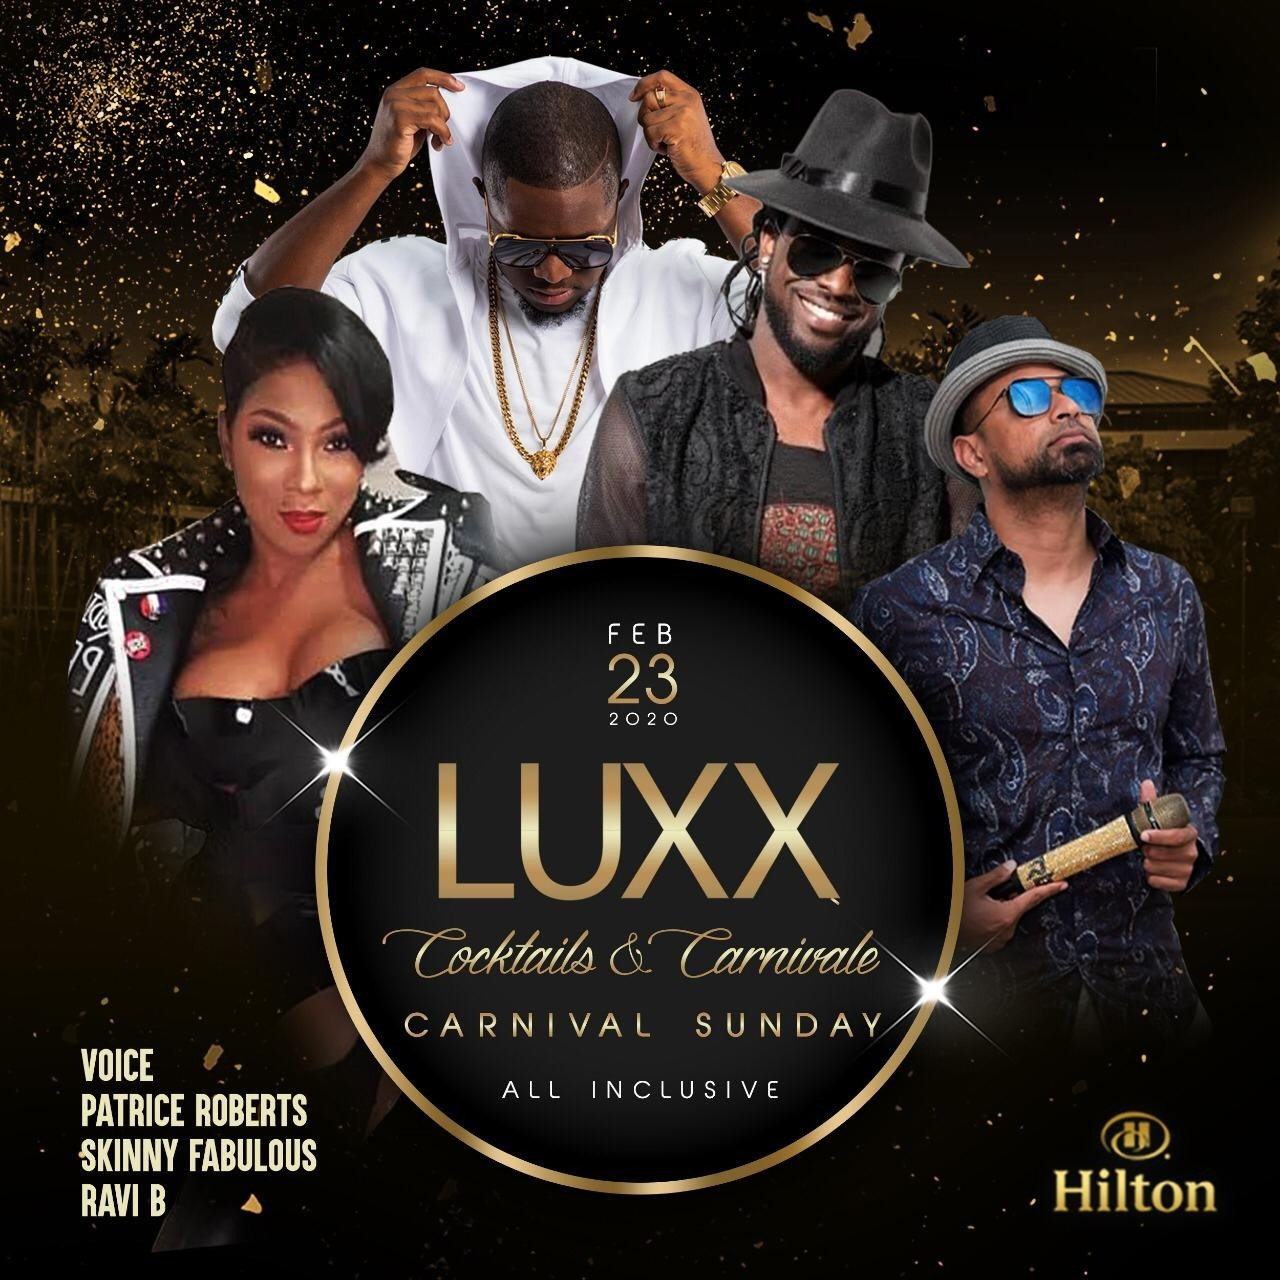 LUXX 2020 - The Ultimate Carnival Sunday All Inclusive Event